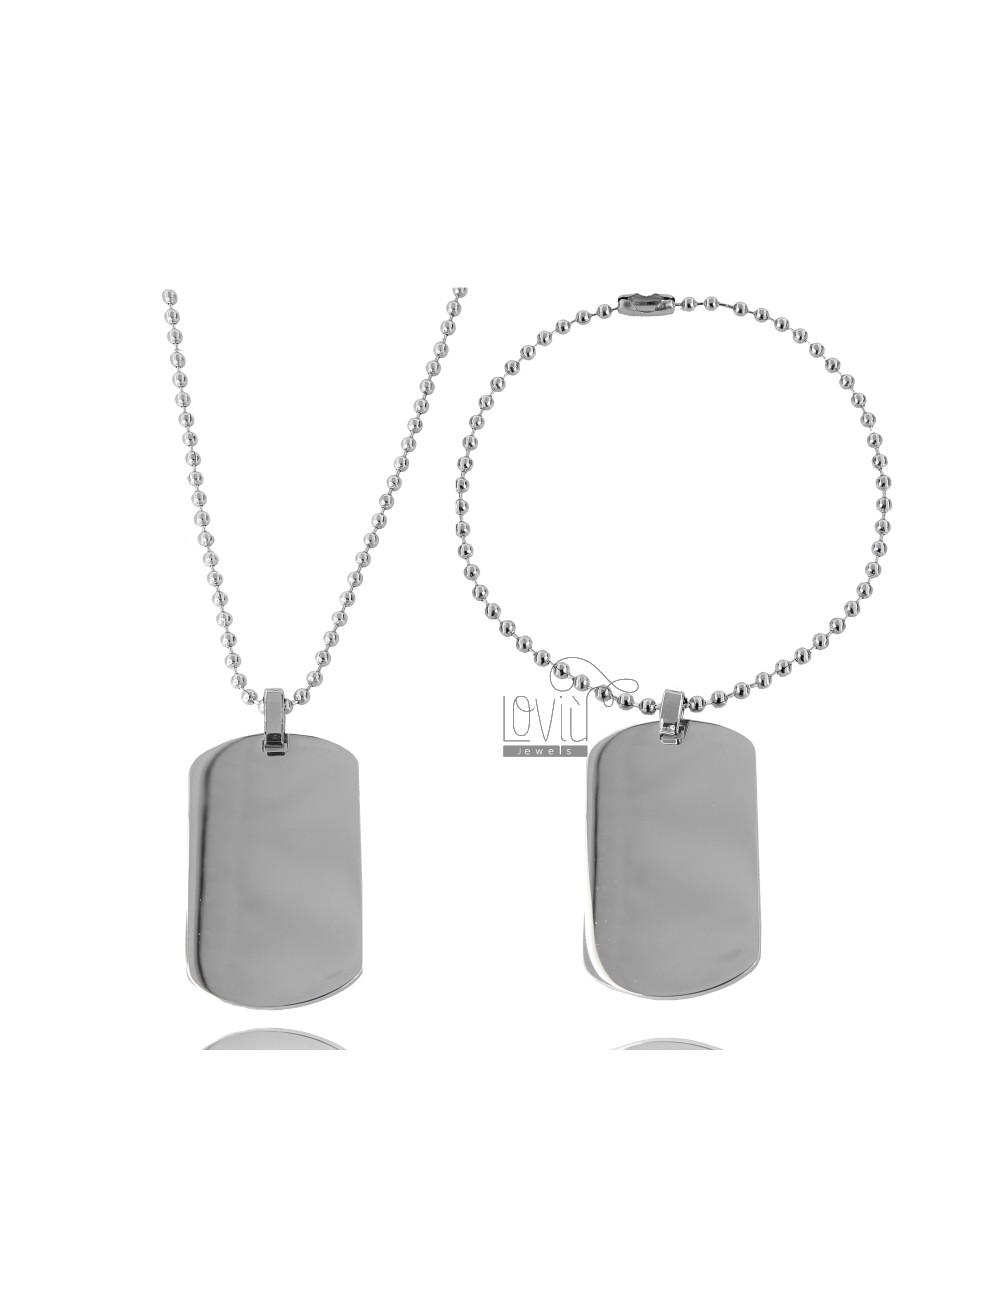 DOUBLE MILITARY MEDAL IN STEEL MM 43X25 WITH BALL CHAIN MM 2 CM 60